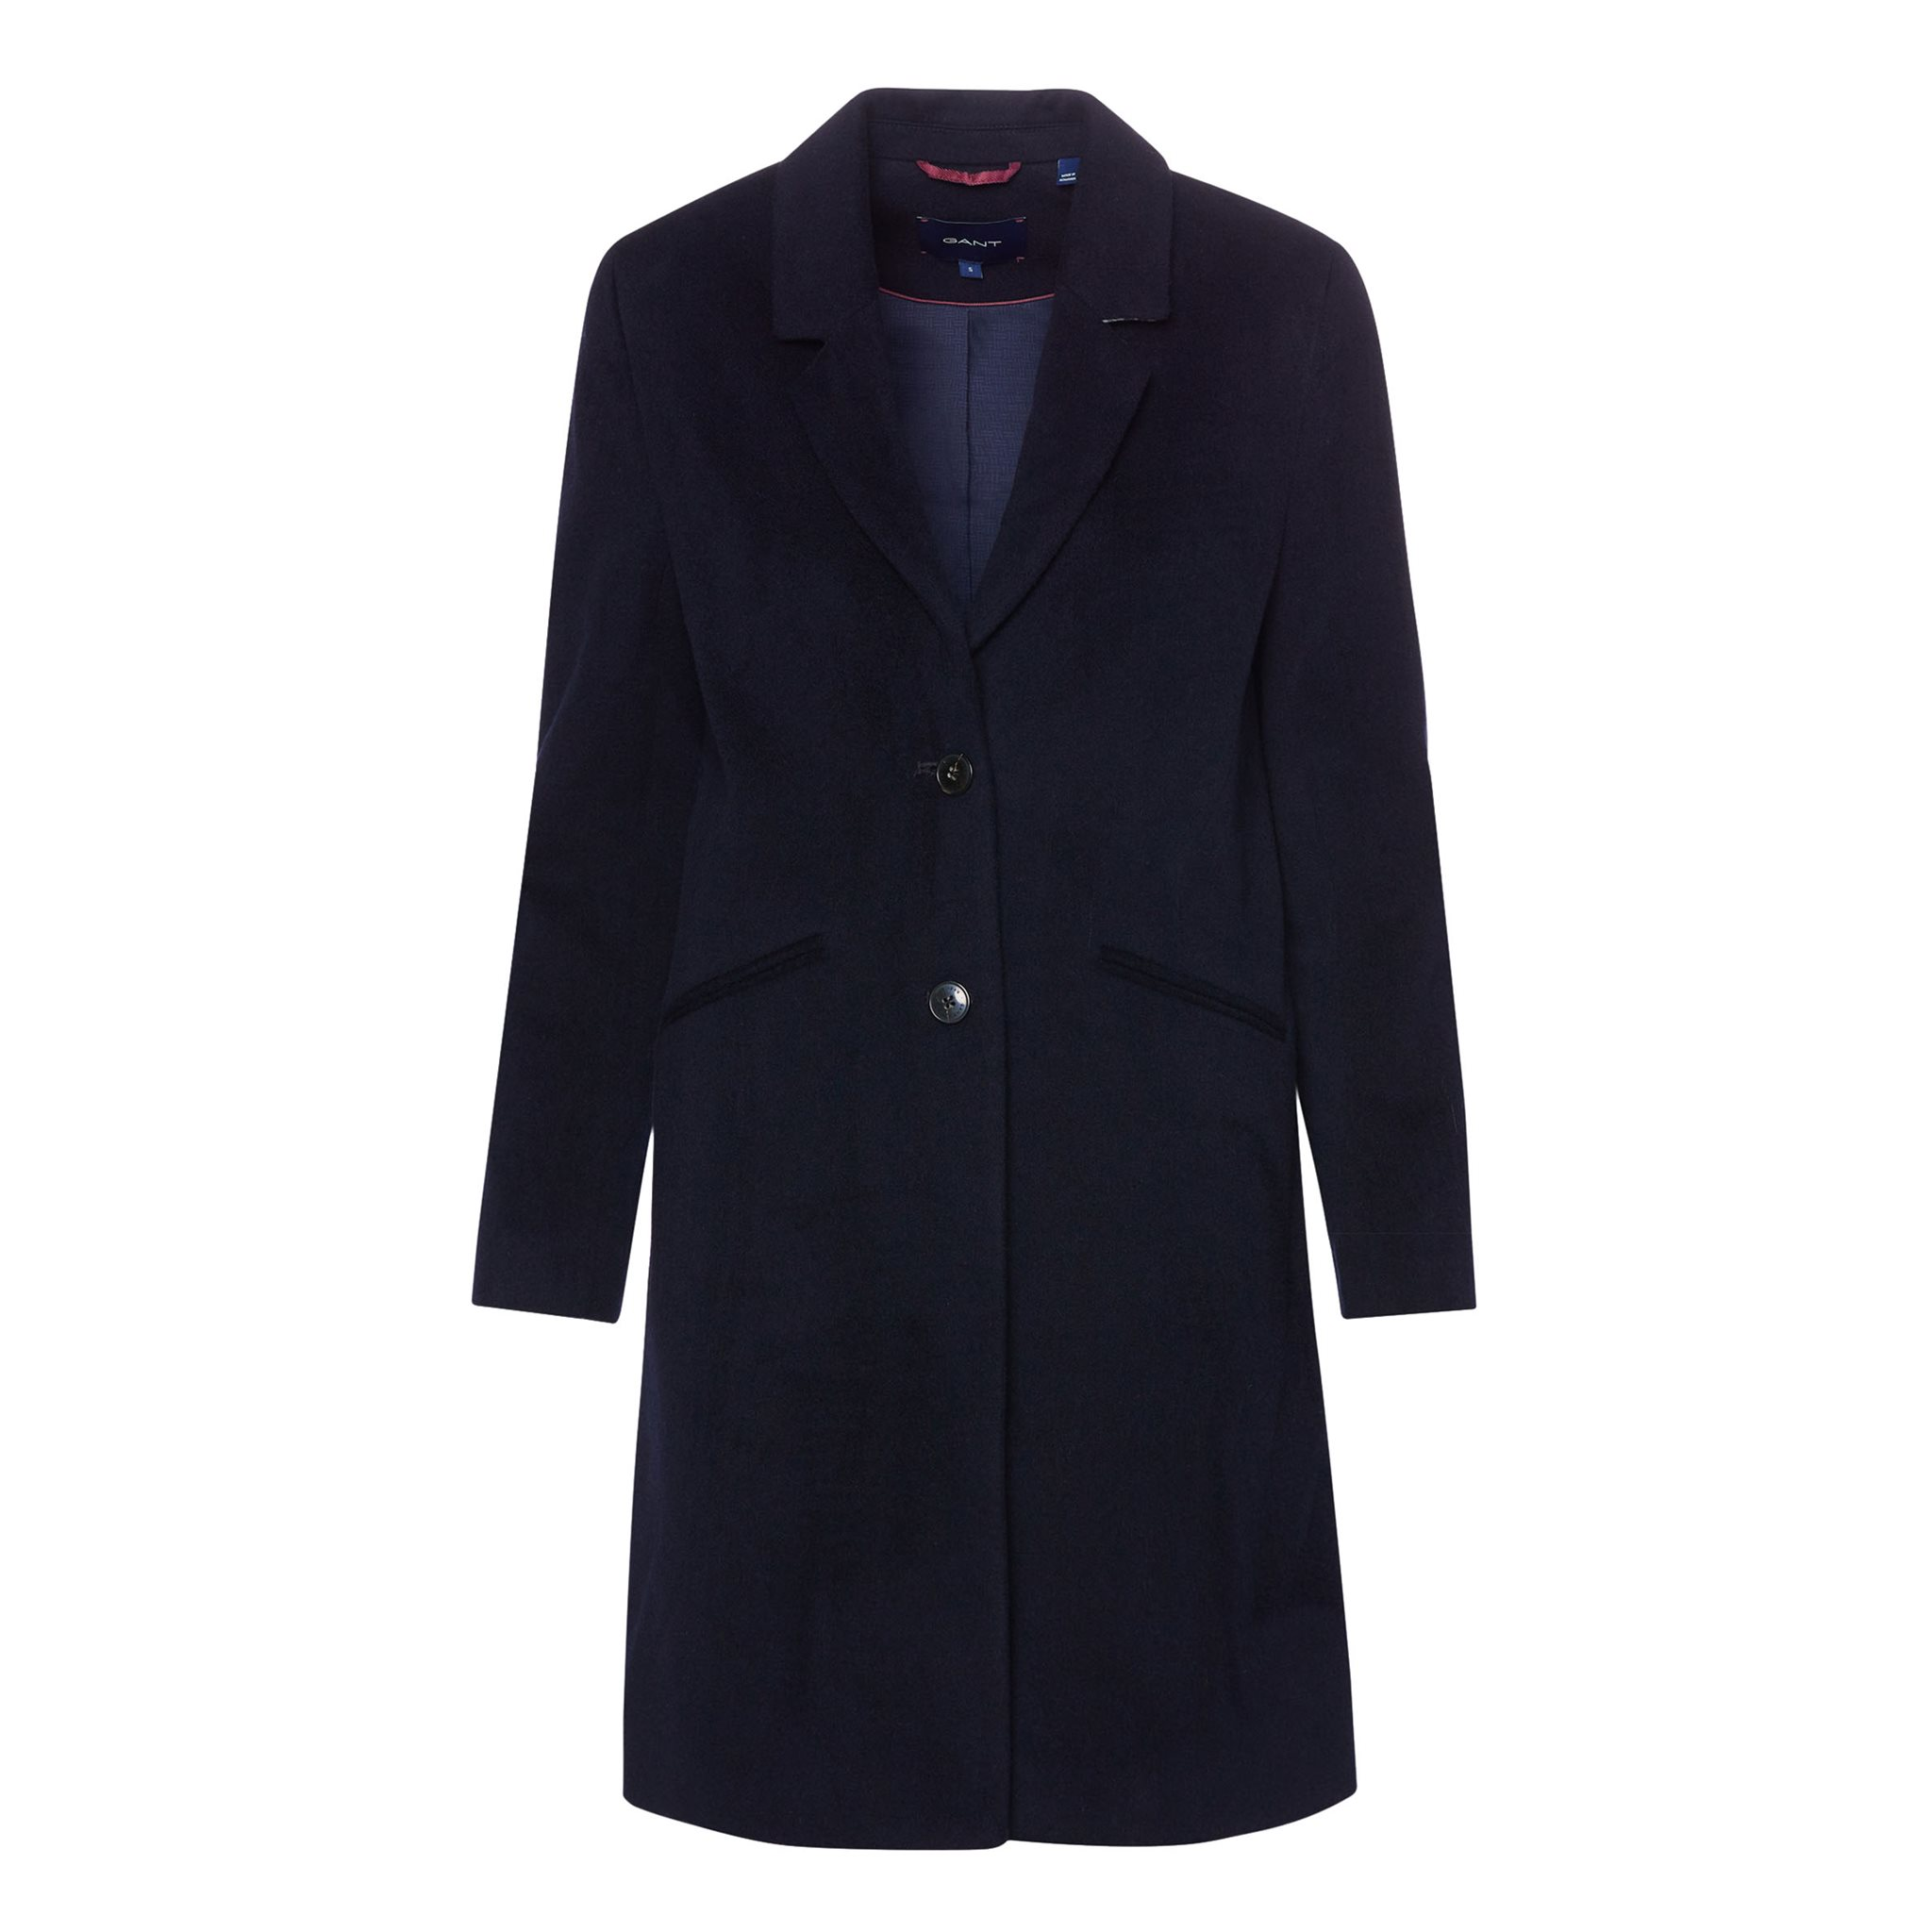 CLASSIC TAILORED COAT GANT WOMAN